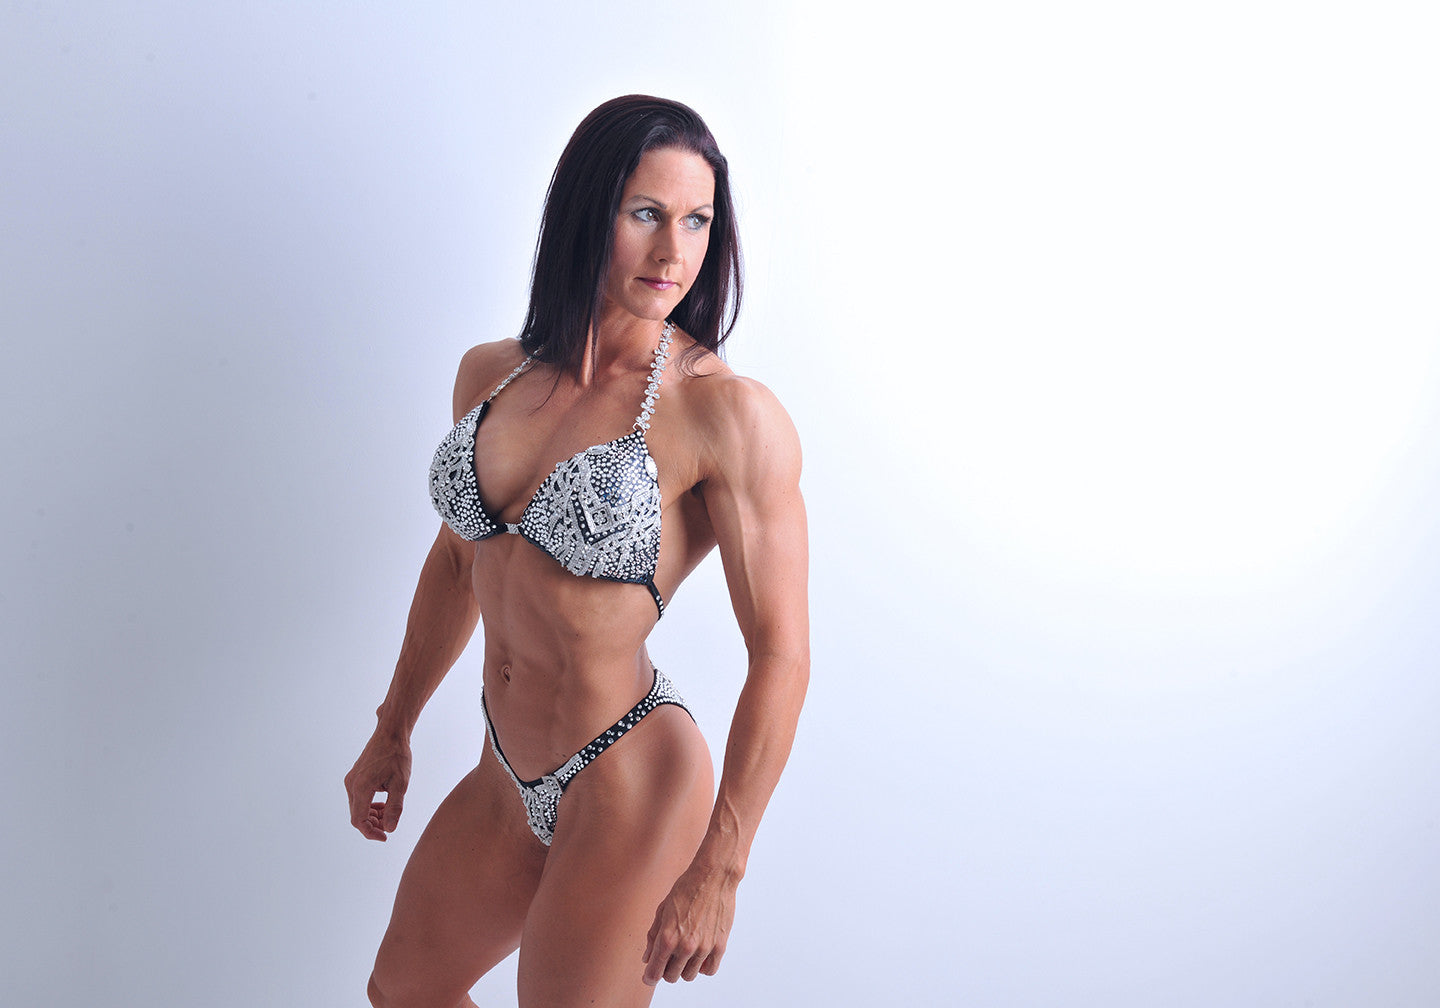 Interview with UKBFF Champion, Clare Barks